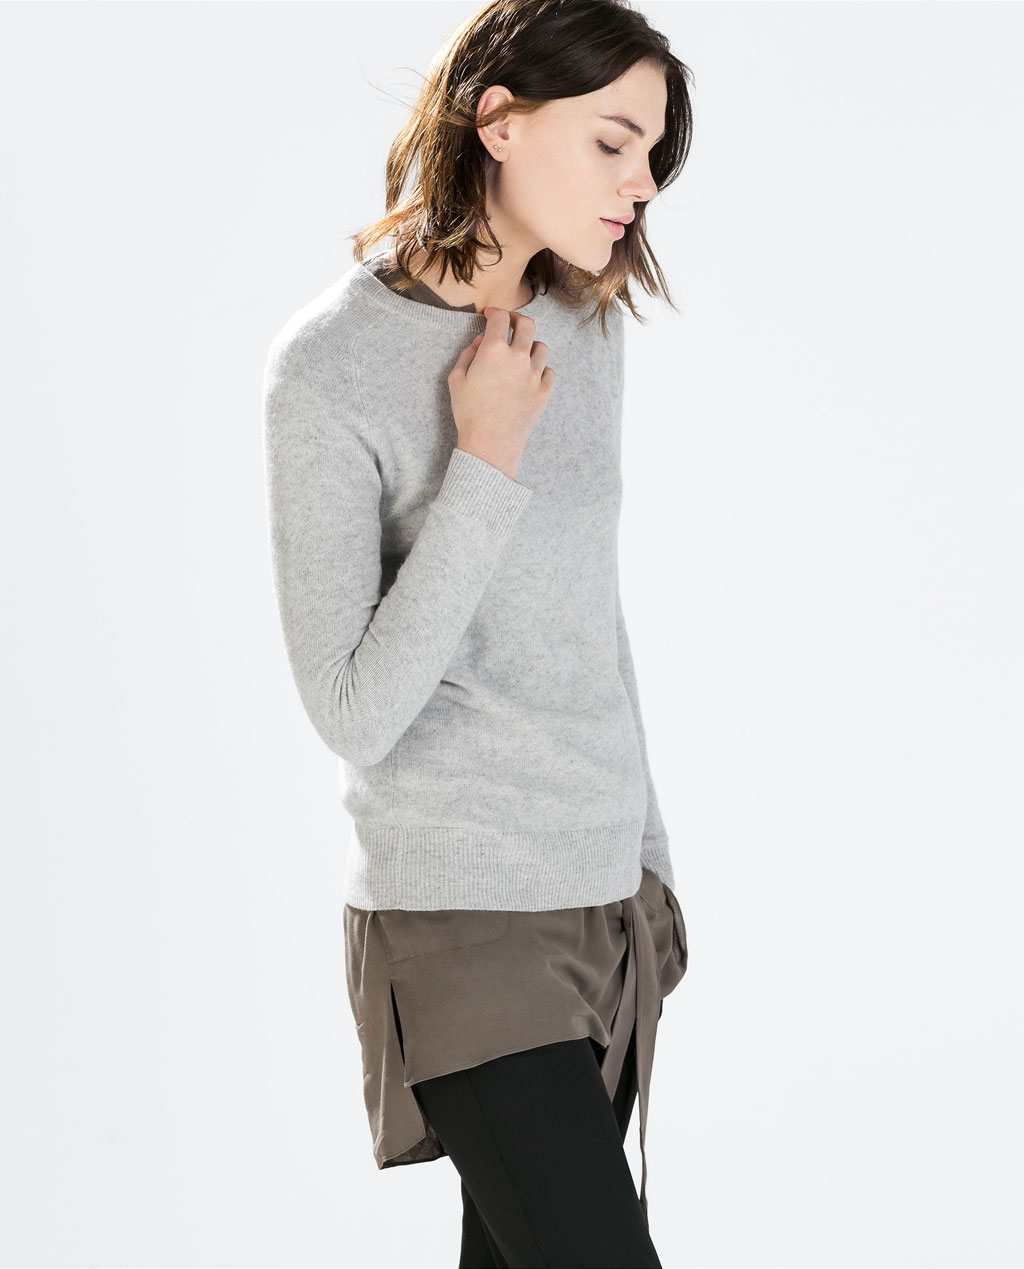 Zara - Cashmere Sweater £89.99 also in navy.